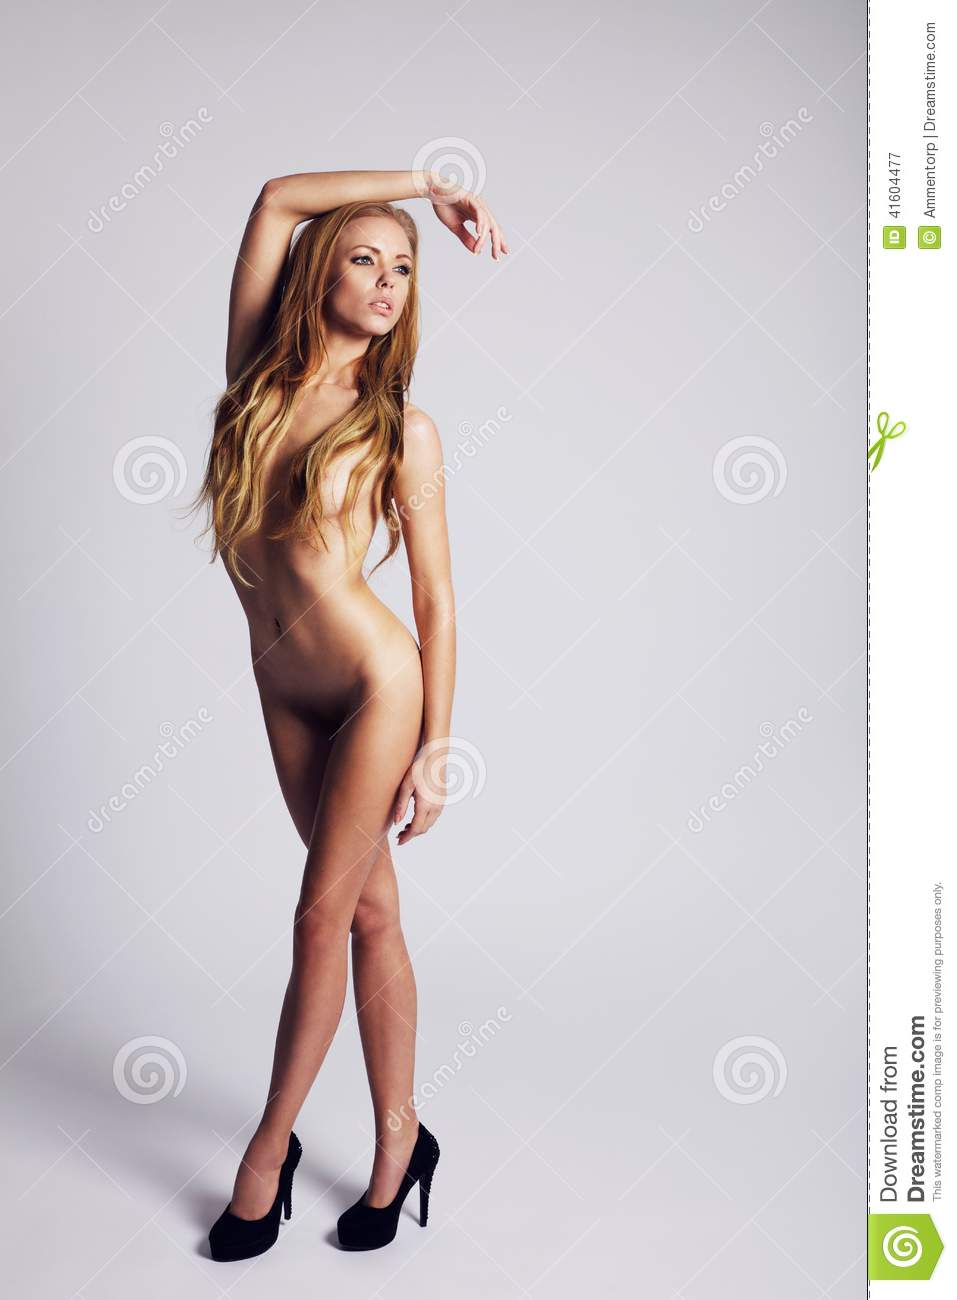 Nude women wearing heels